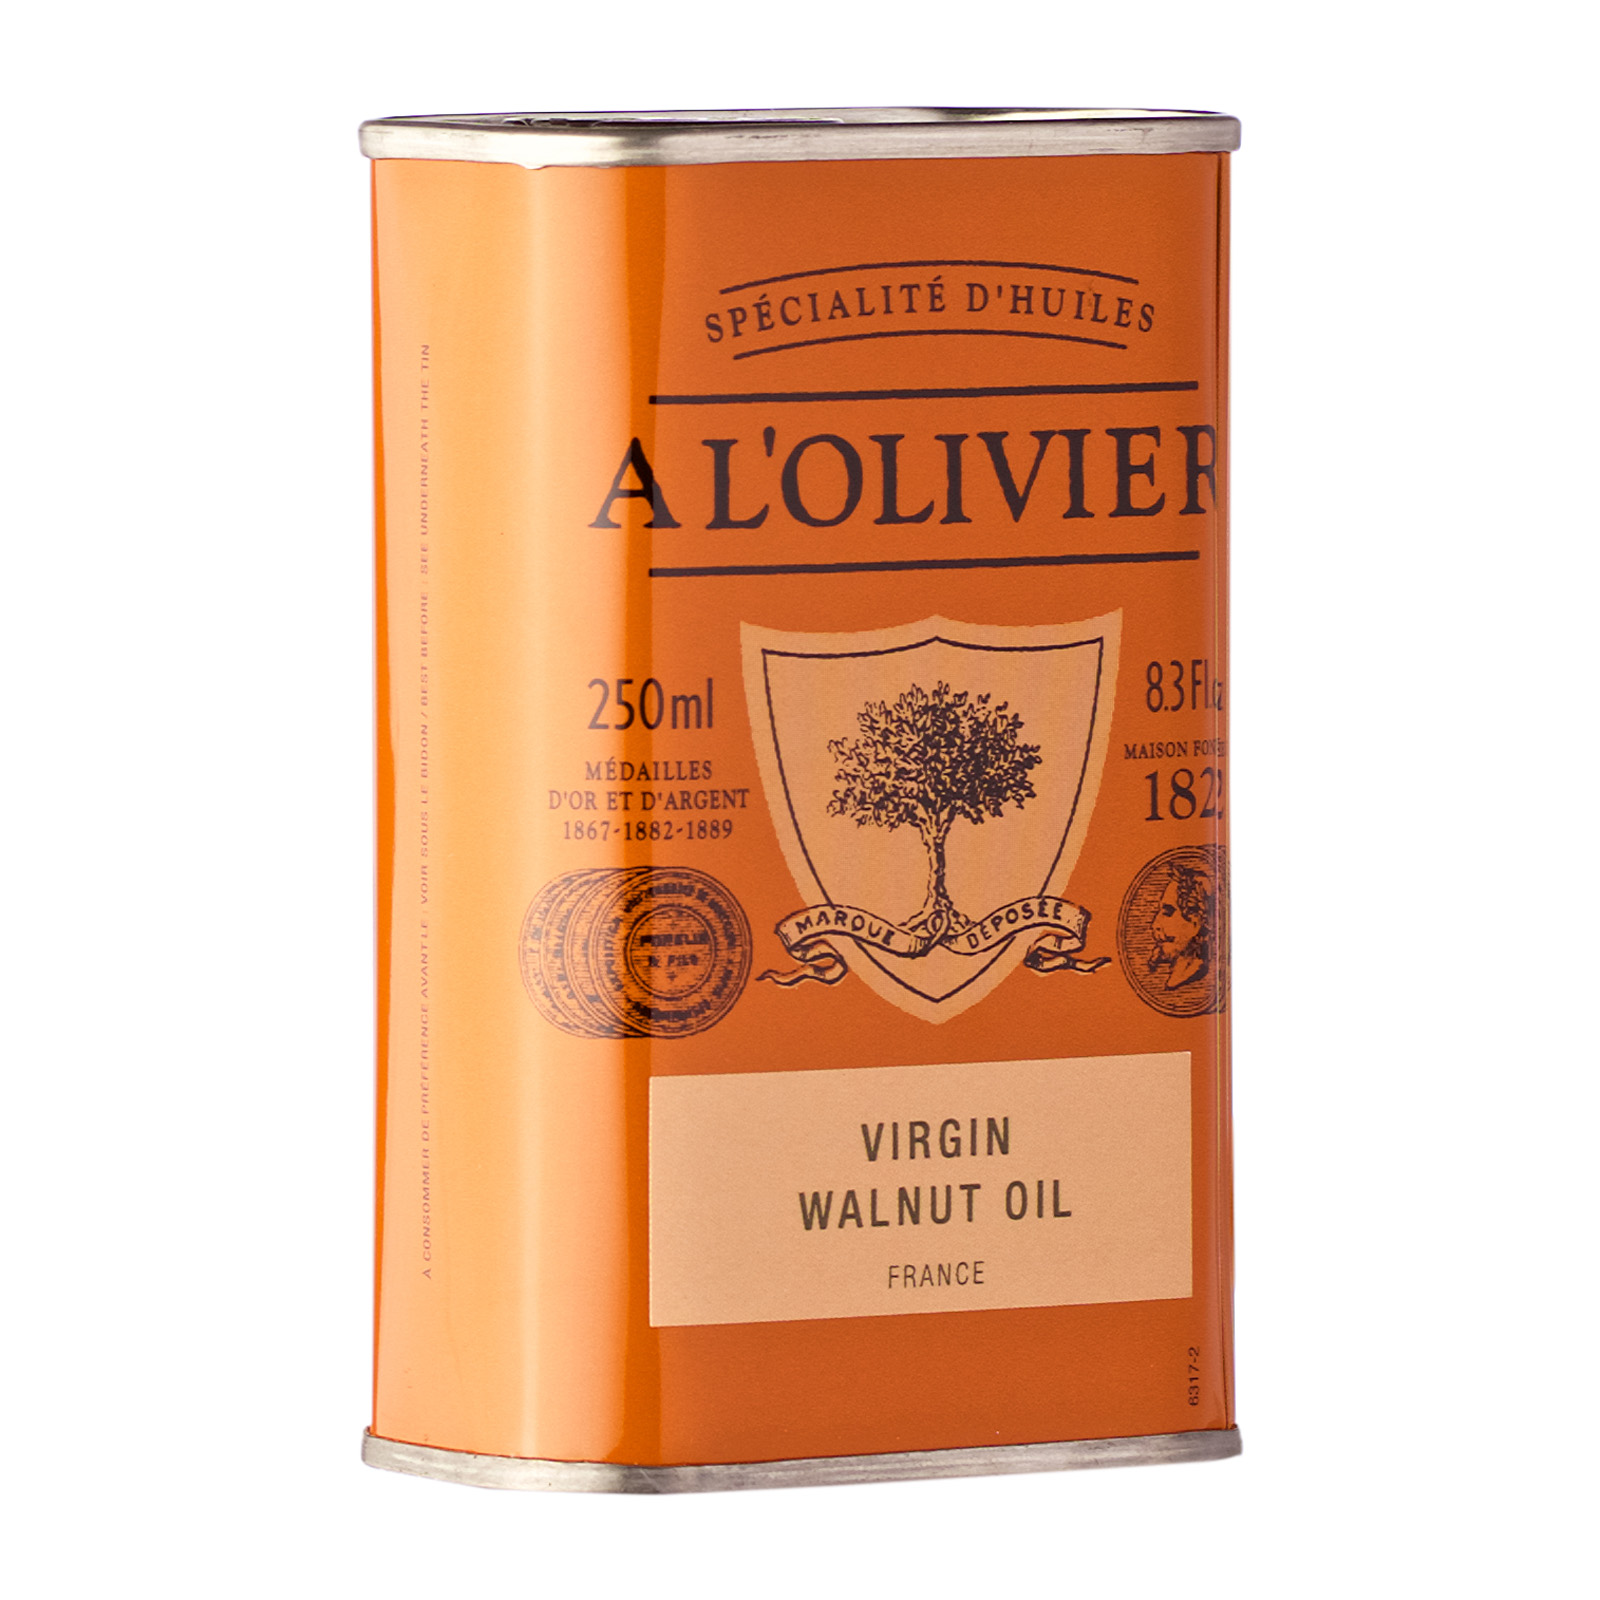 VIRGIN WALNUT OIL TIN